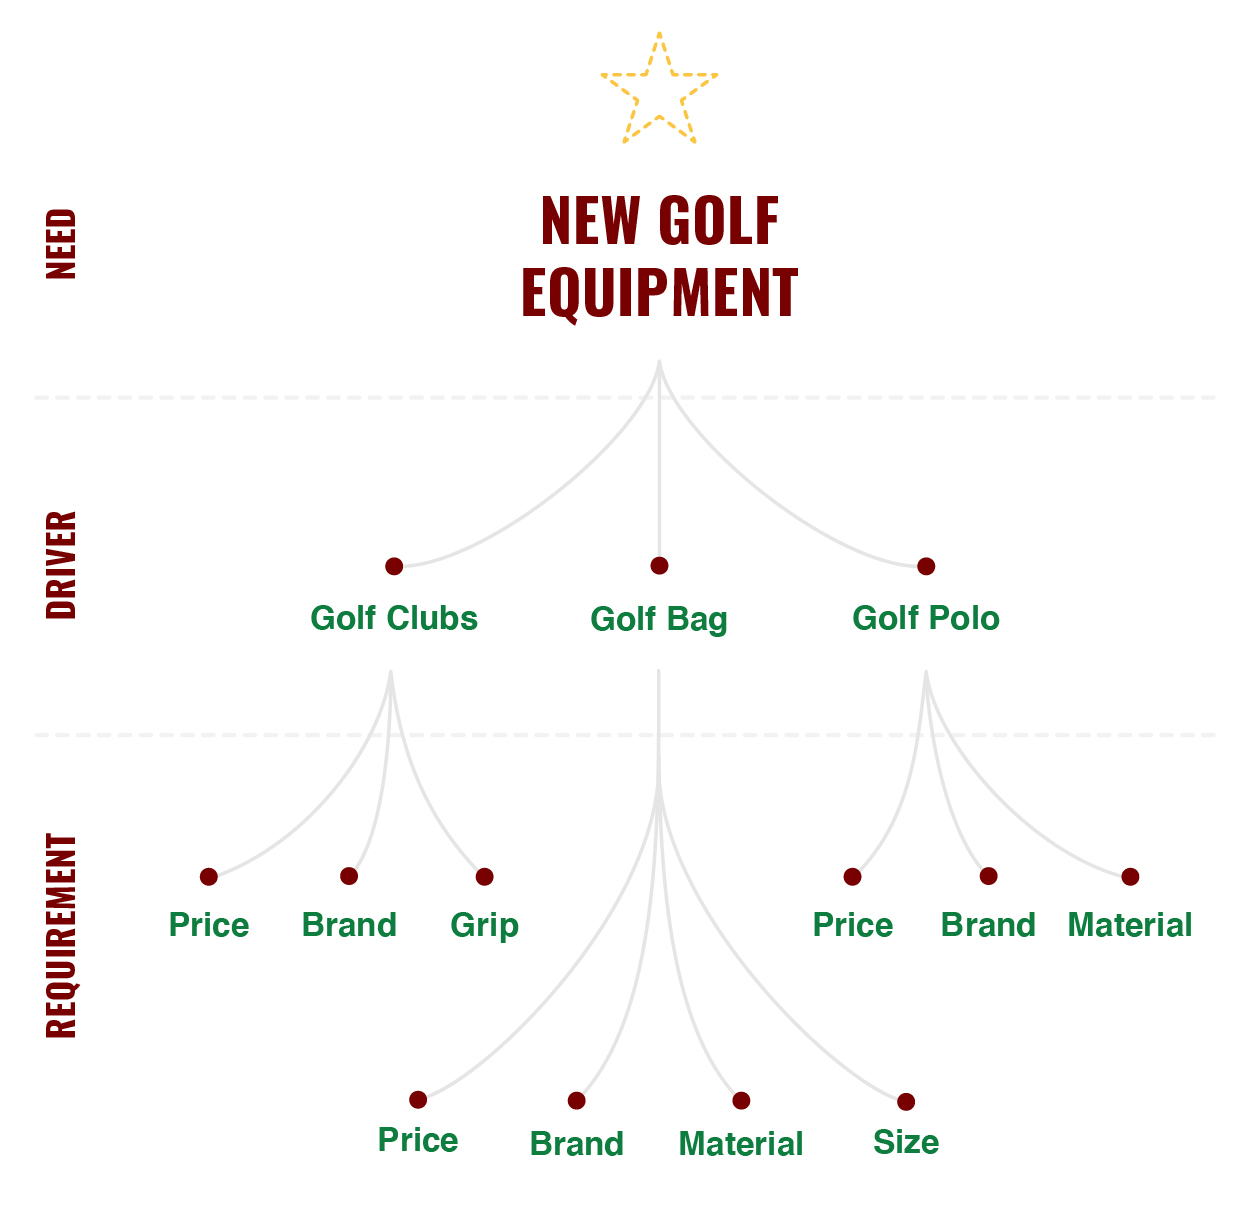 A critical-to-quality tree describing the drivers, needs and requirements for new golf equipment.